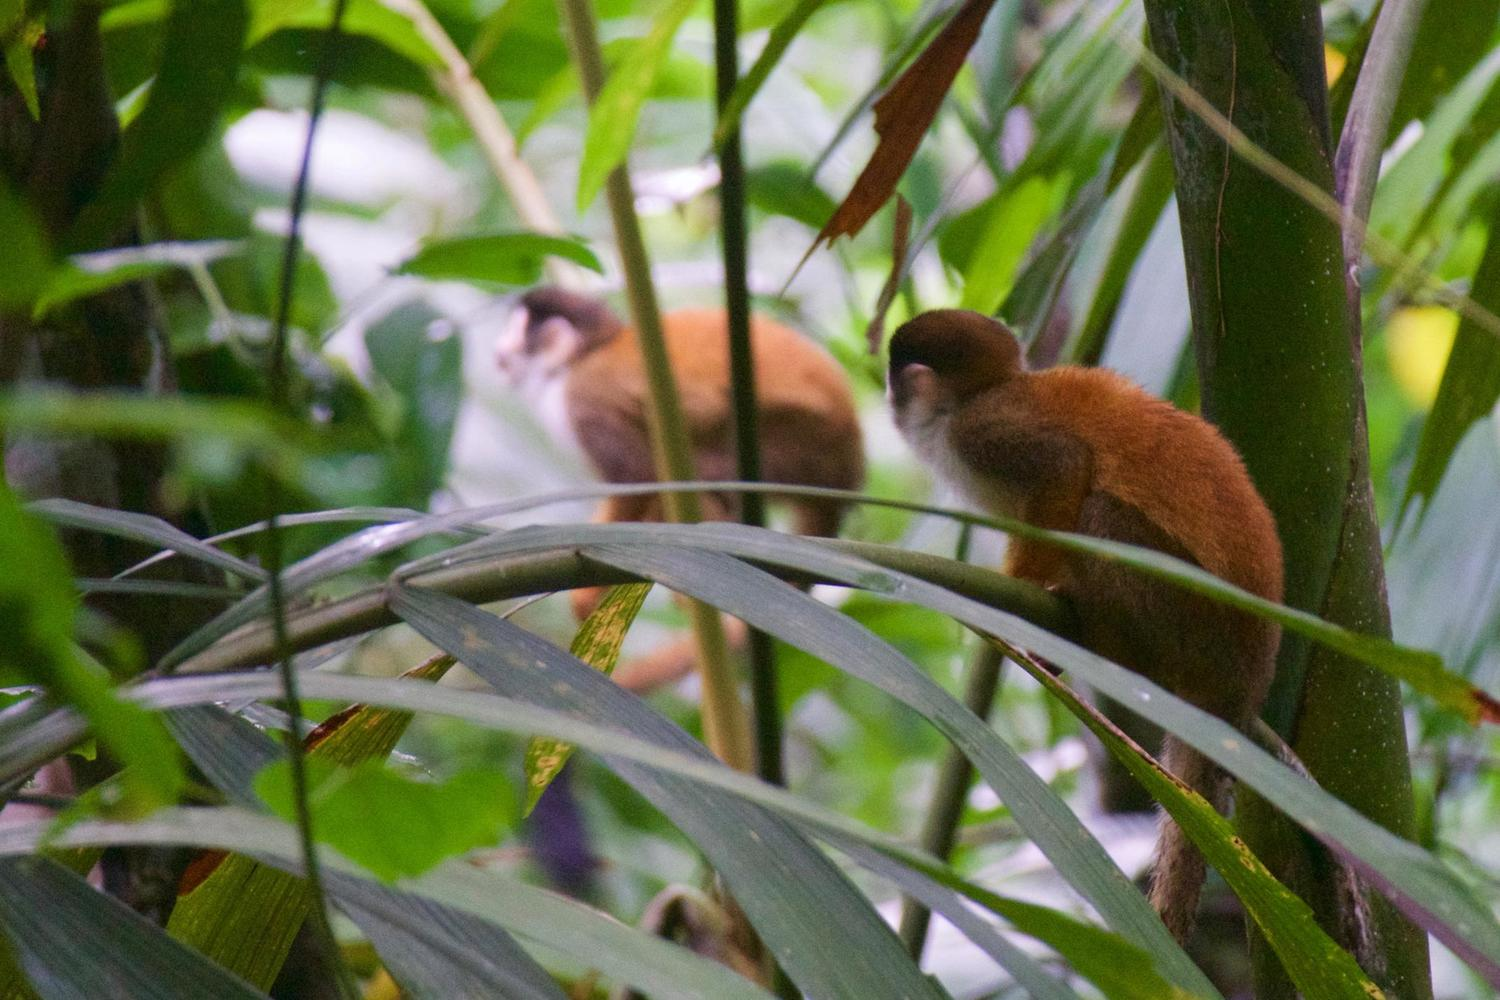 Titi Monkeys